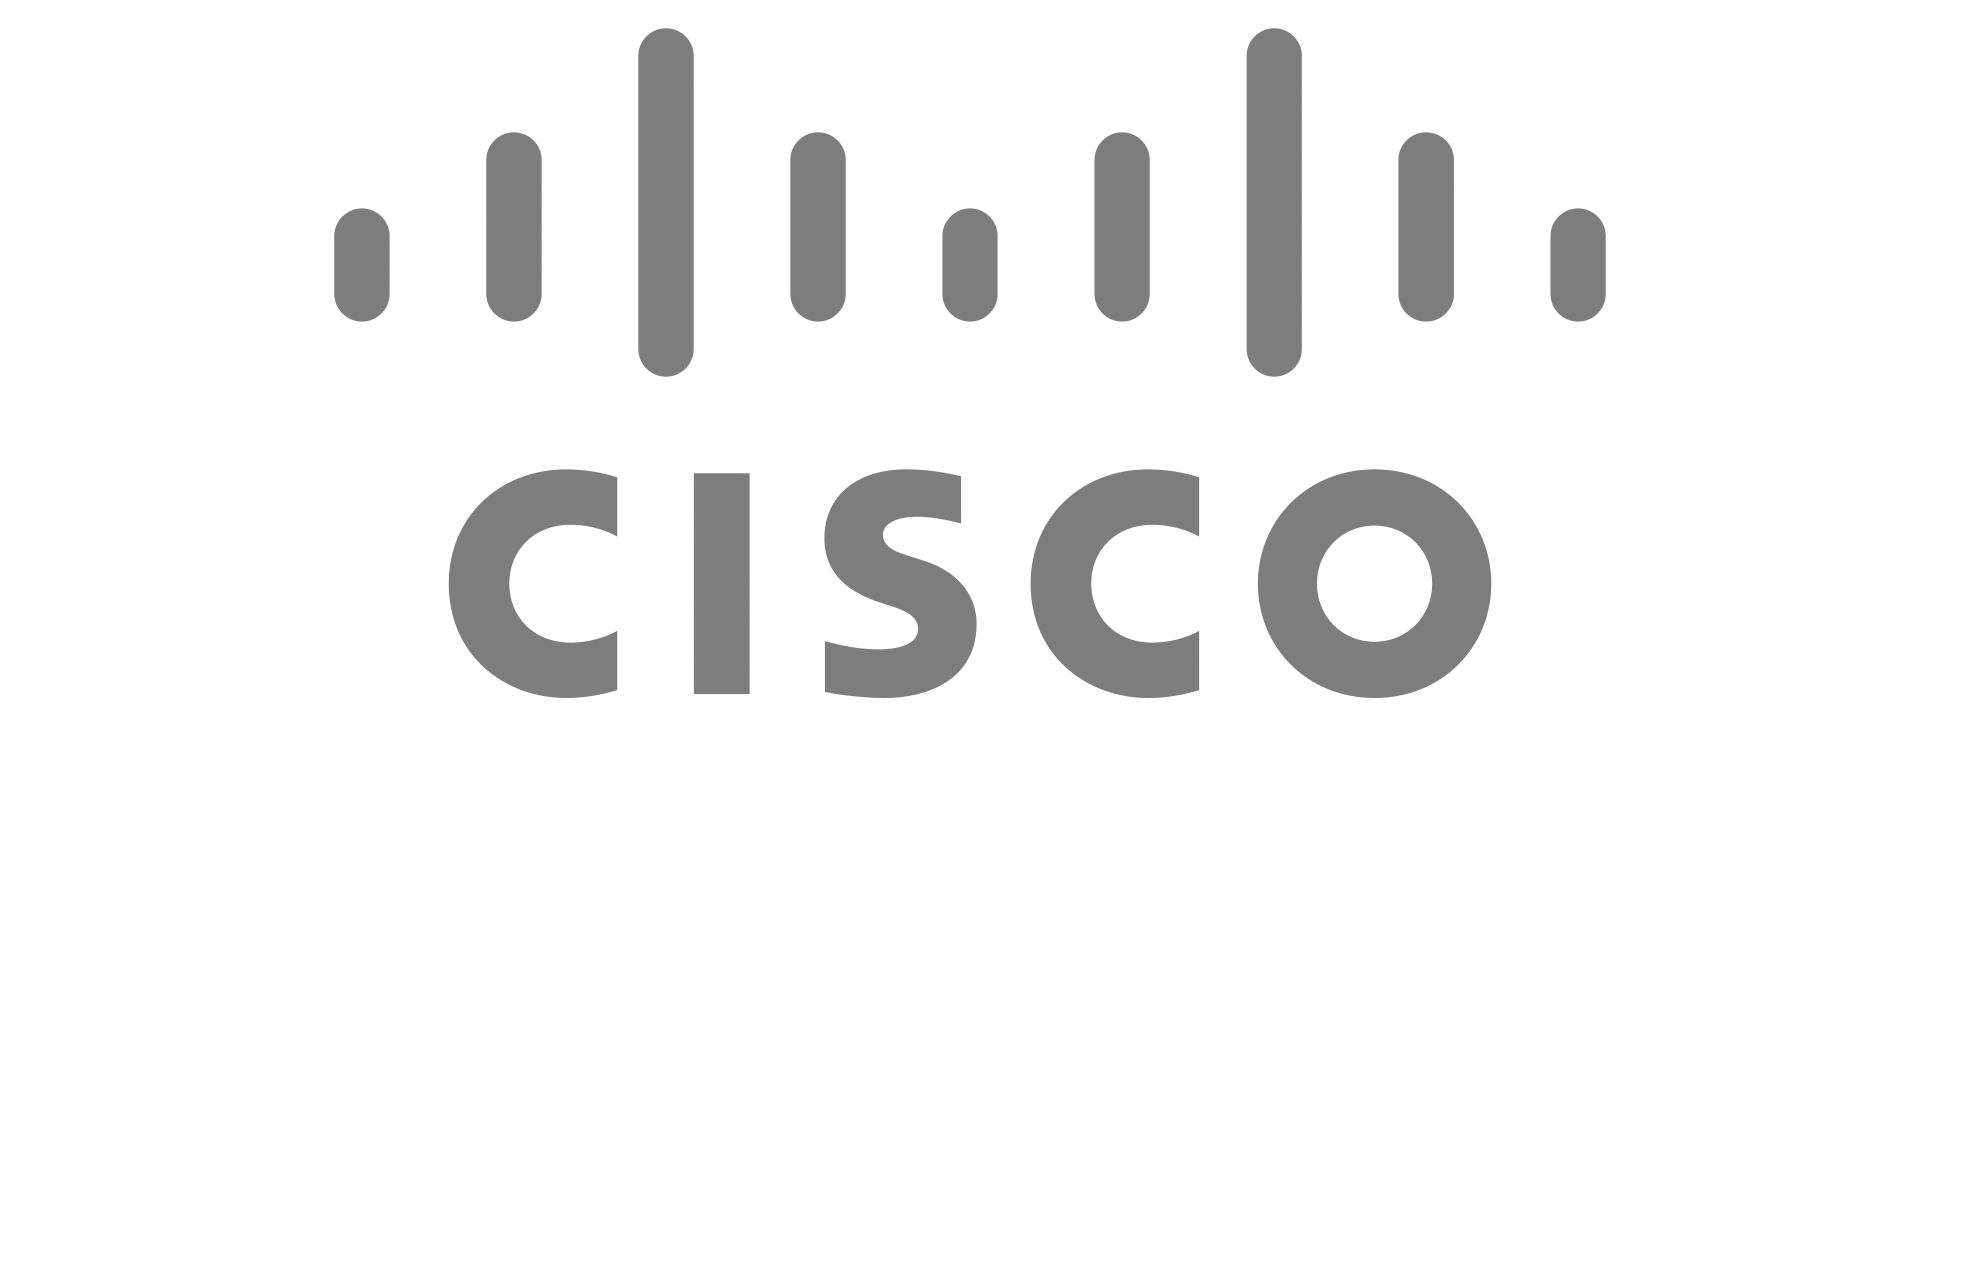 cisco-gs5.png